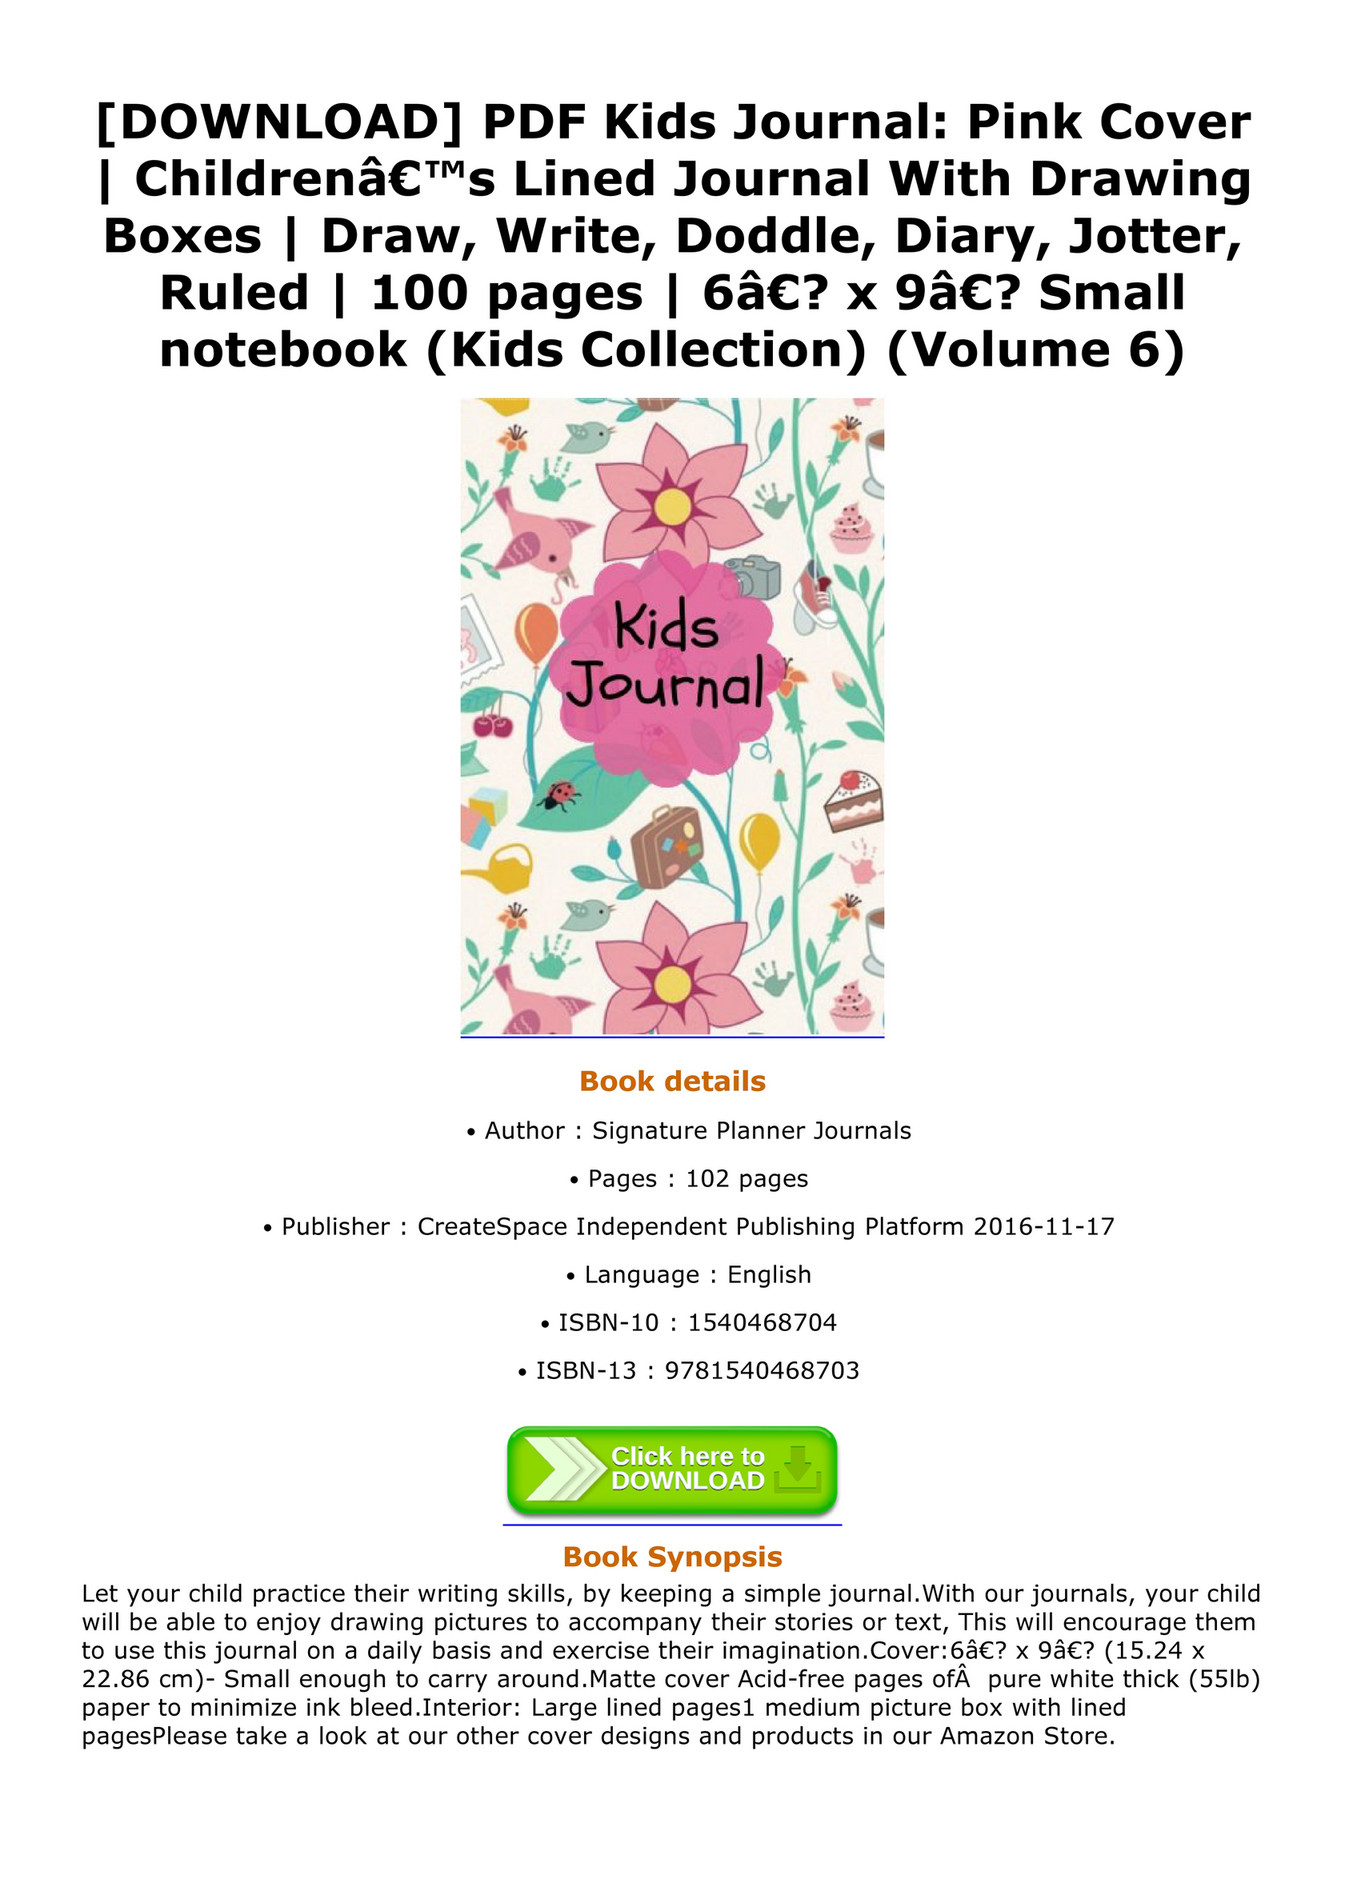 Toshiko Download Pdf Kids Journal Pink Cover Childrena S Lined Journal With Drawing Boxes Draw Write Doddle Diary Jotter Ruled 100 Pages 6a X 9a Small Notebook Kids Collection Volume Pdf